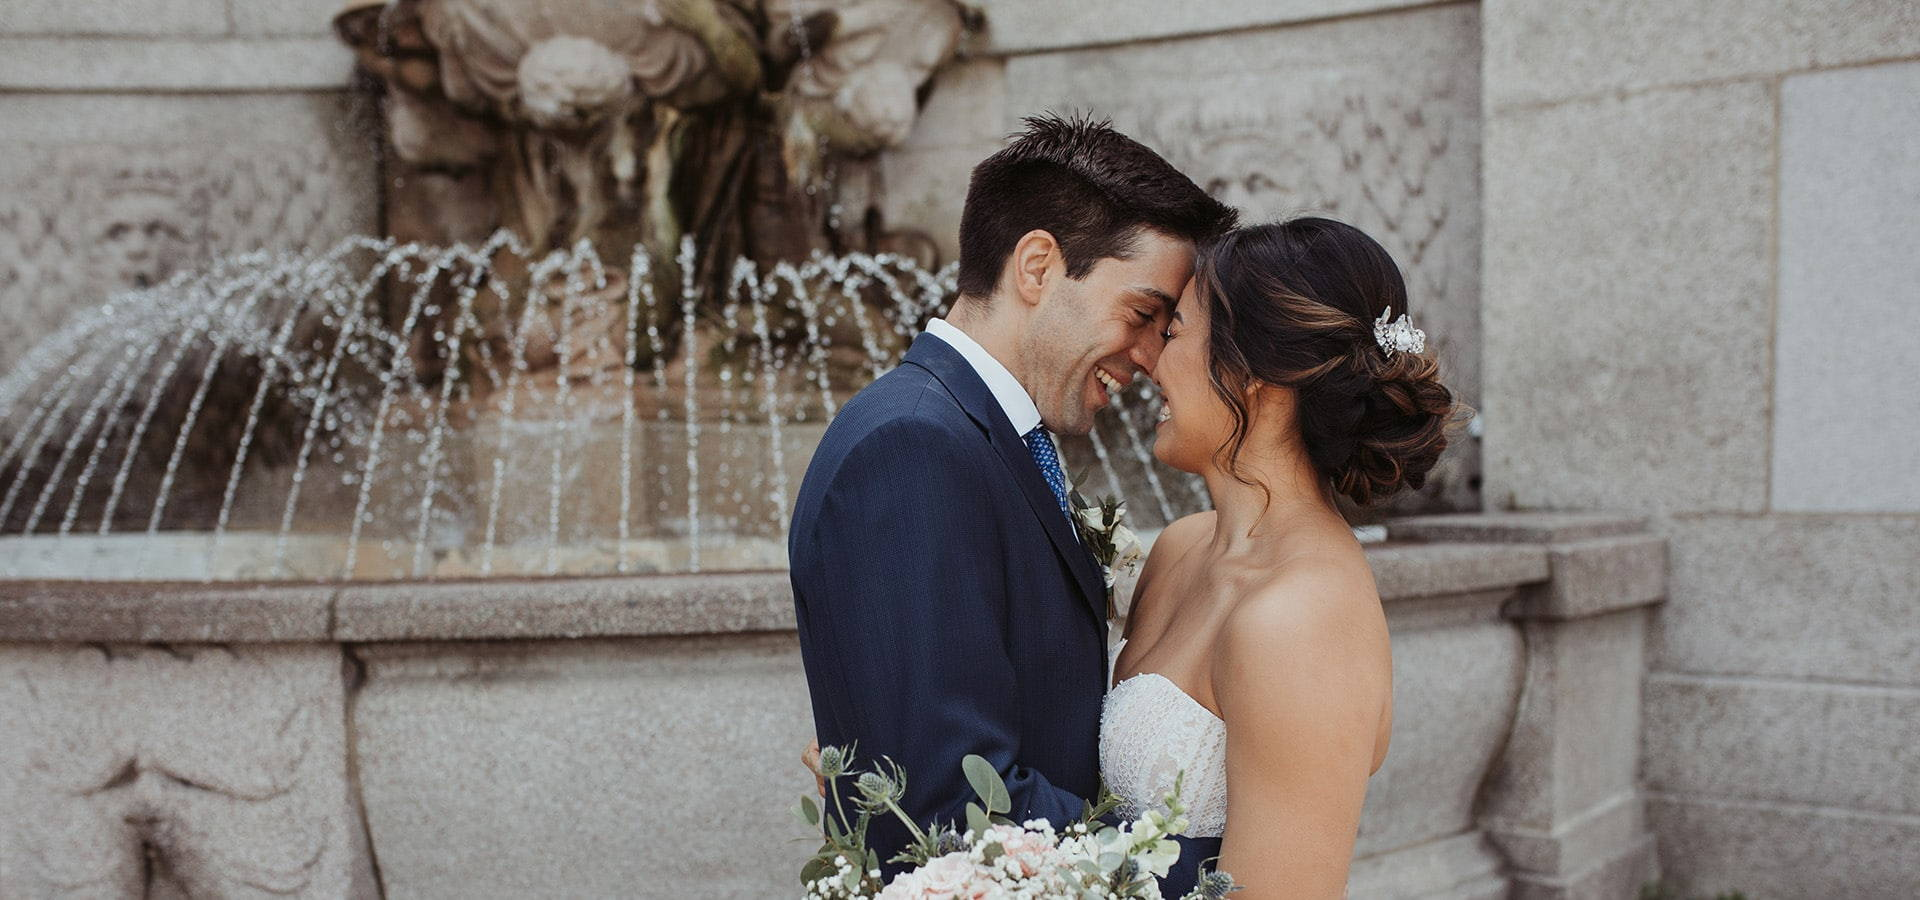 Hero image for Cindy and Giacomo's Rustically Romantic Wedding at Ovest